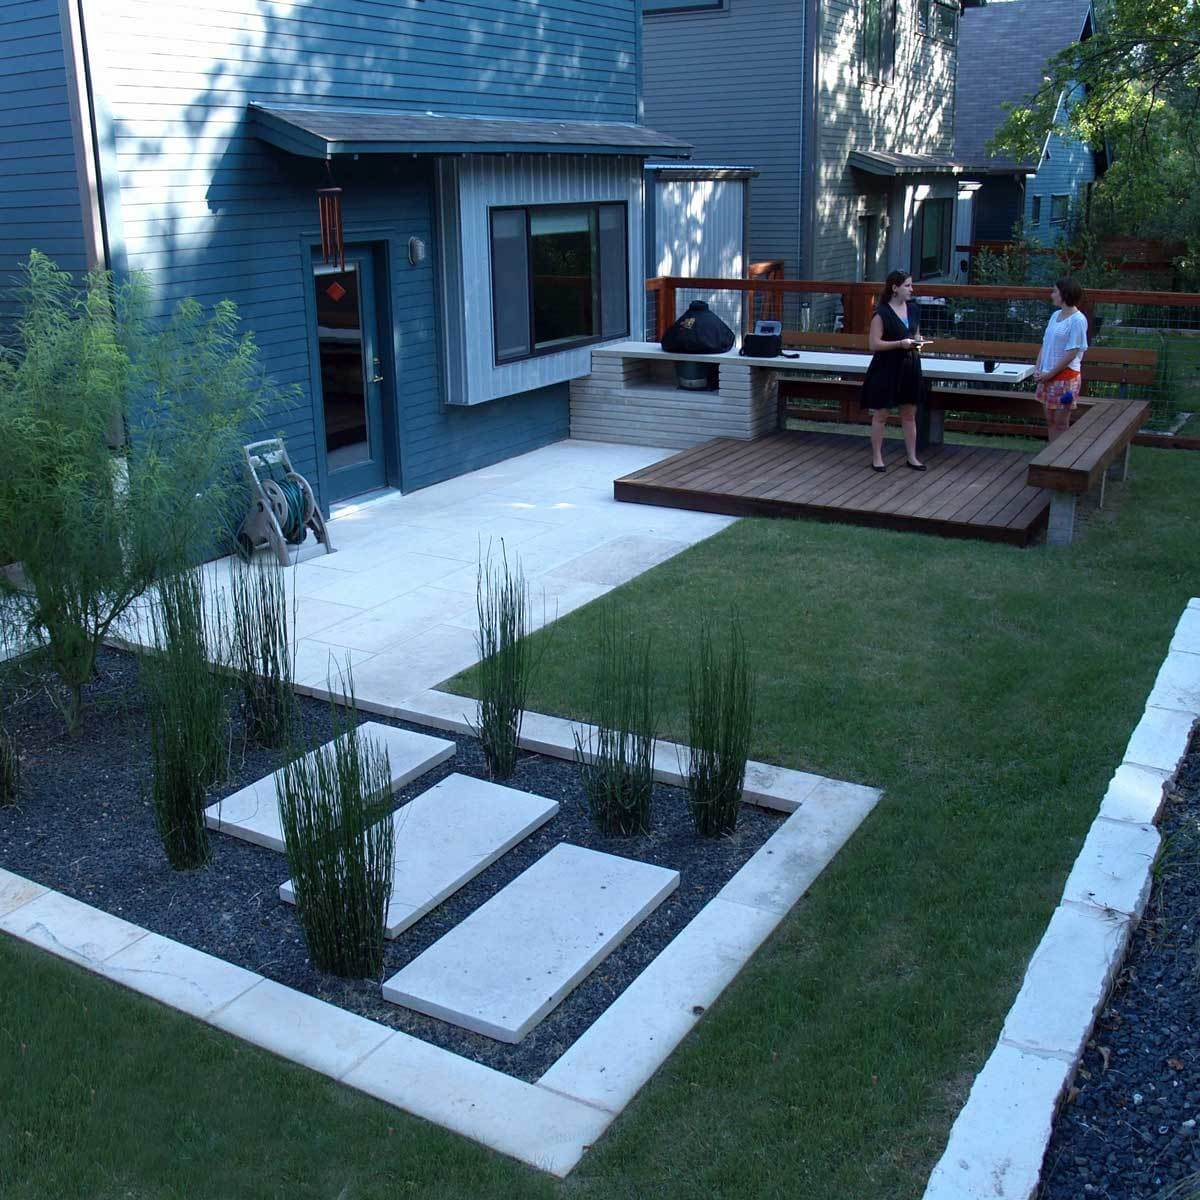 15 Perfect Patio Designs The Family Handyman in 13 Awesome Designs of How to Improve Small Backyard Patio Ideas